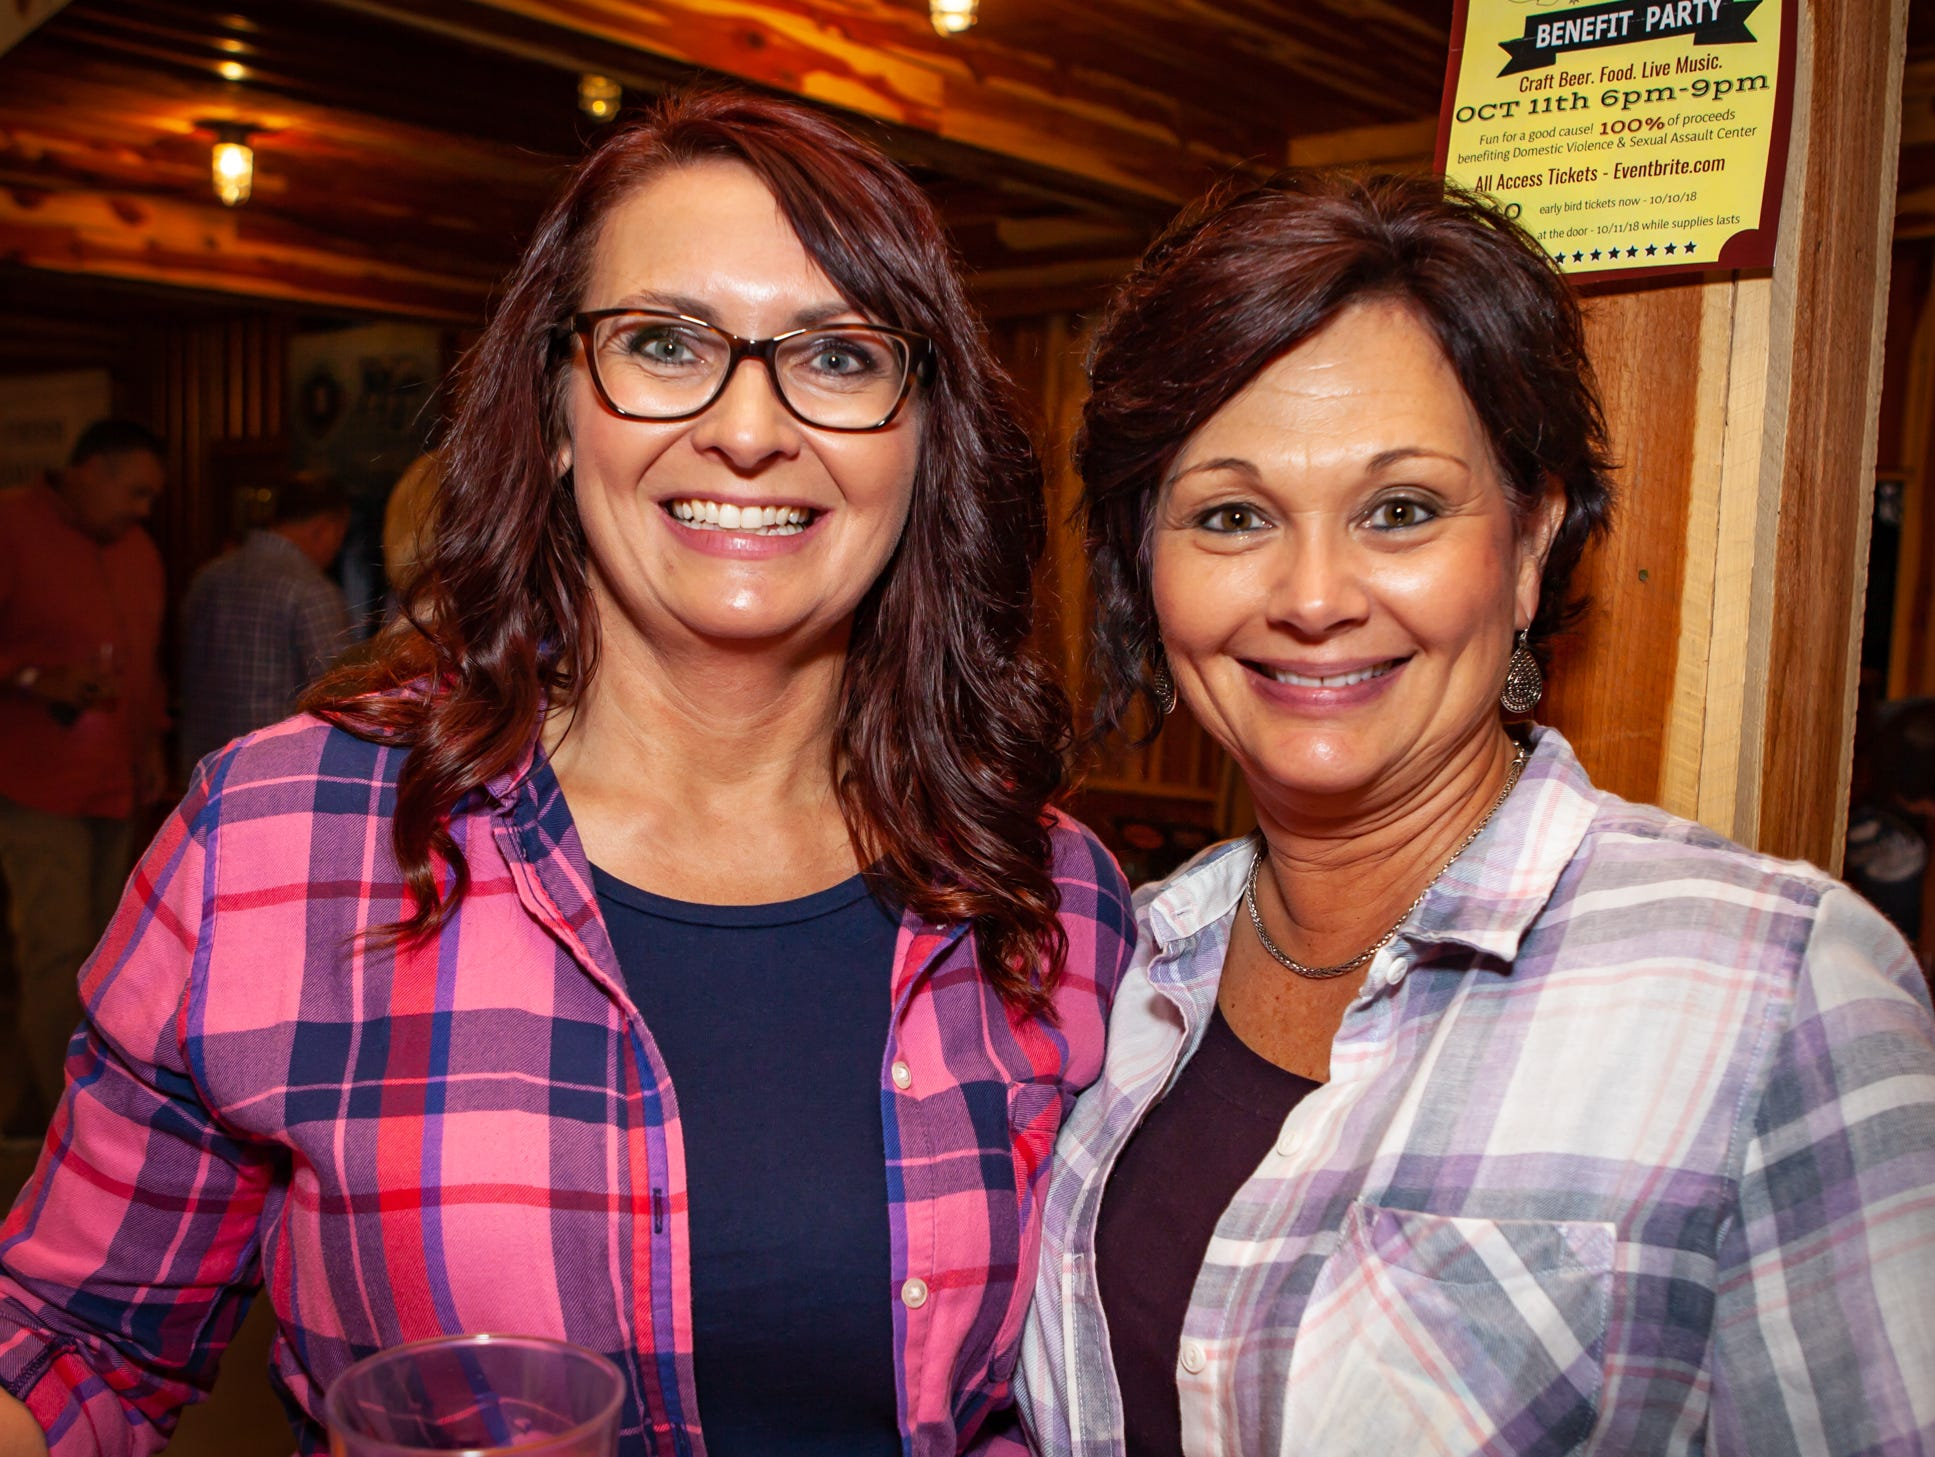 Boots and Brews: Shannon Romans and Patt Oeser